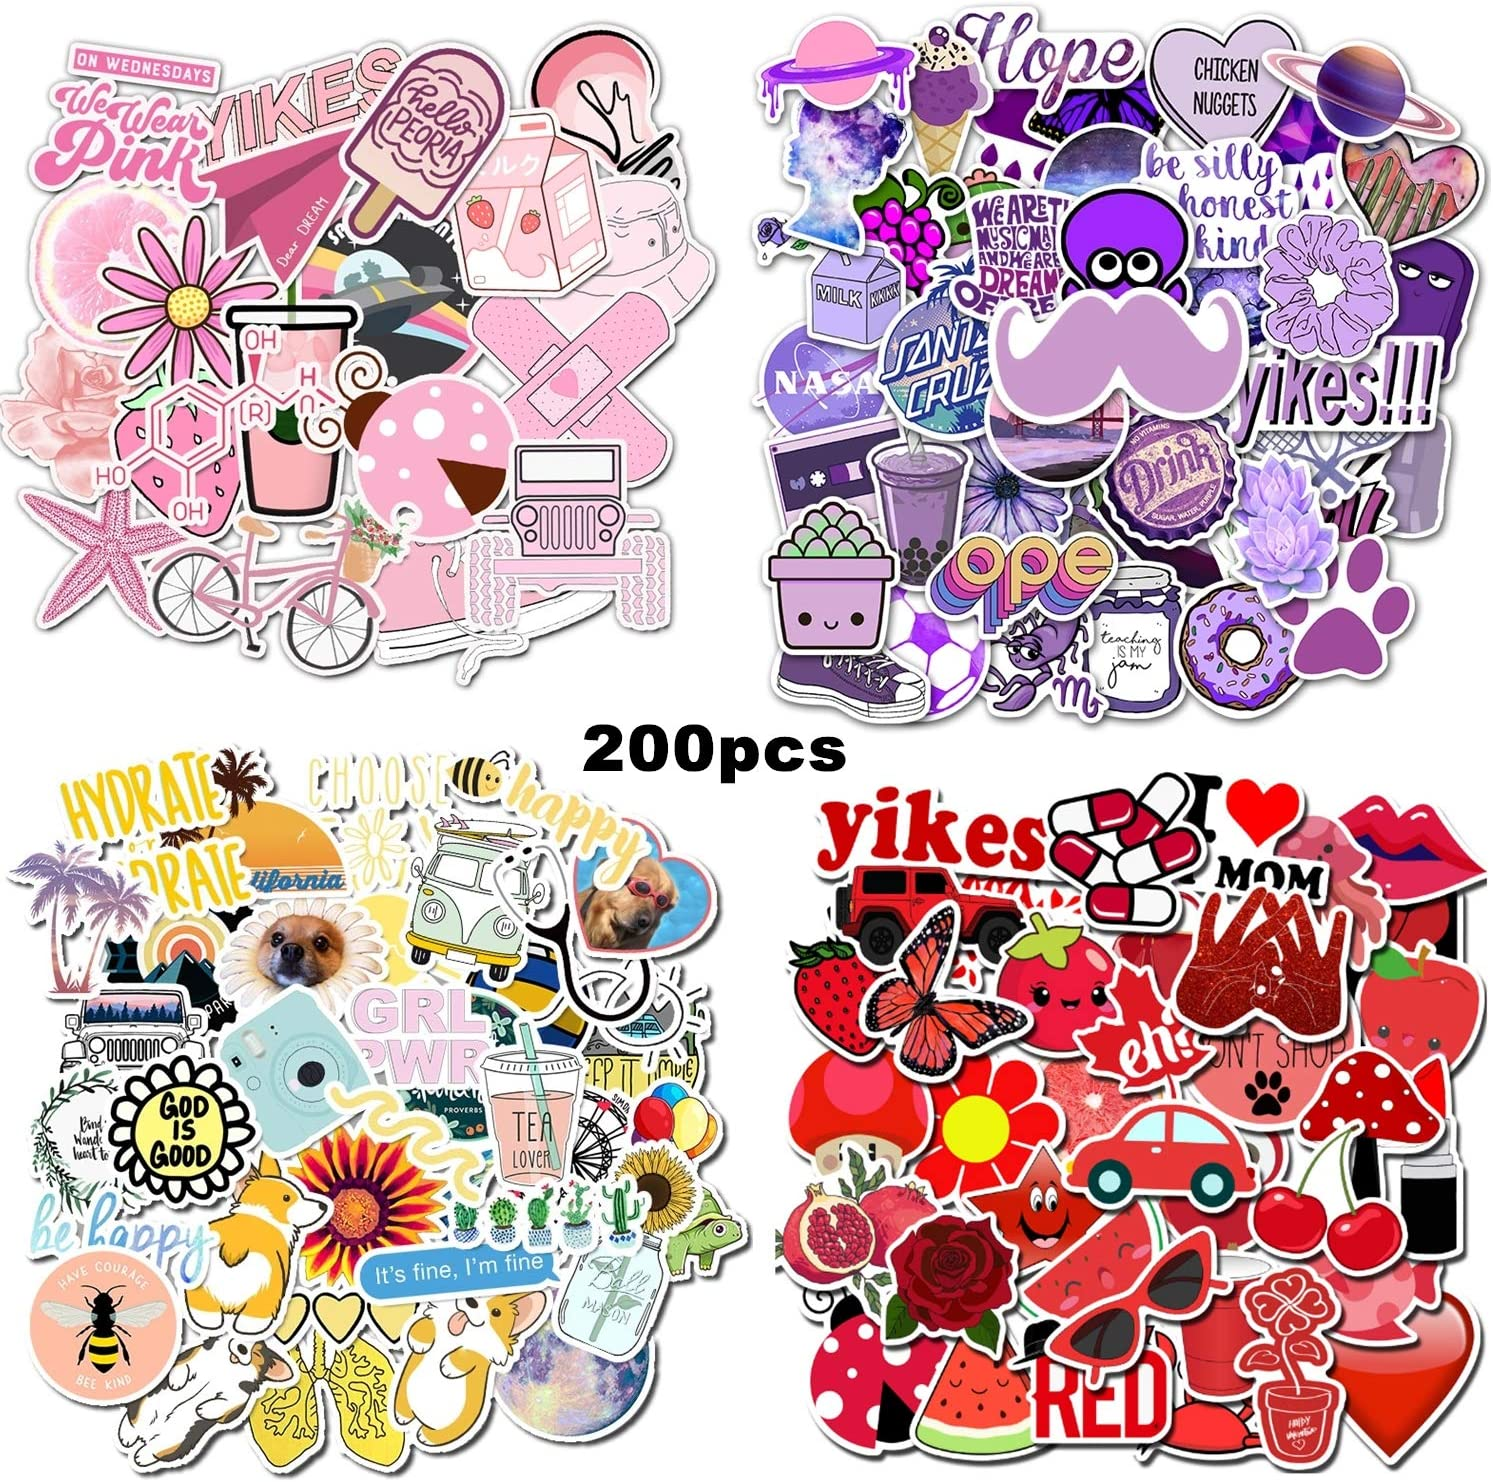 Water Bottles Stickers Waterproof Cute Graffiti Vinyl Stickers for Women Teens Girls Boys Adults, Laptop, Tablets, Skateboards, Mobile Phones, Kettles, Computer, Refrigerator, Notebook (200pcs)